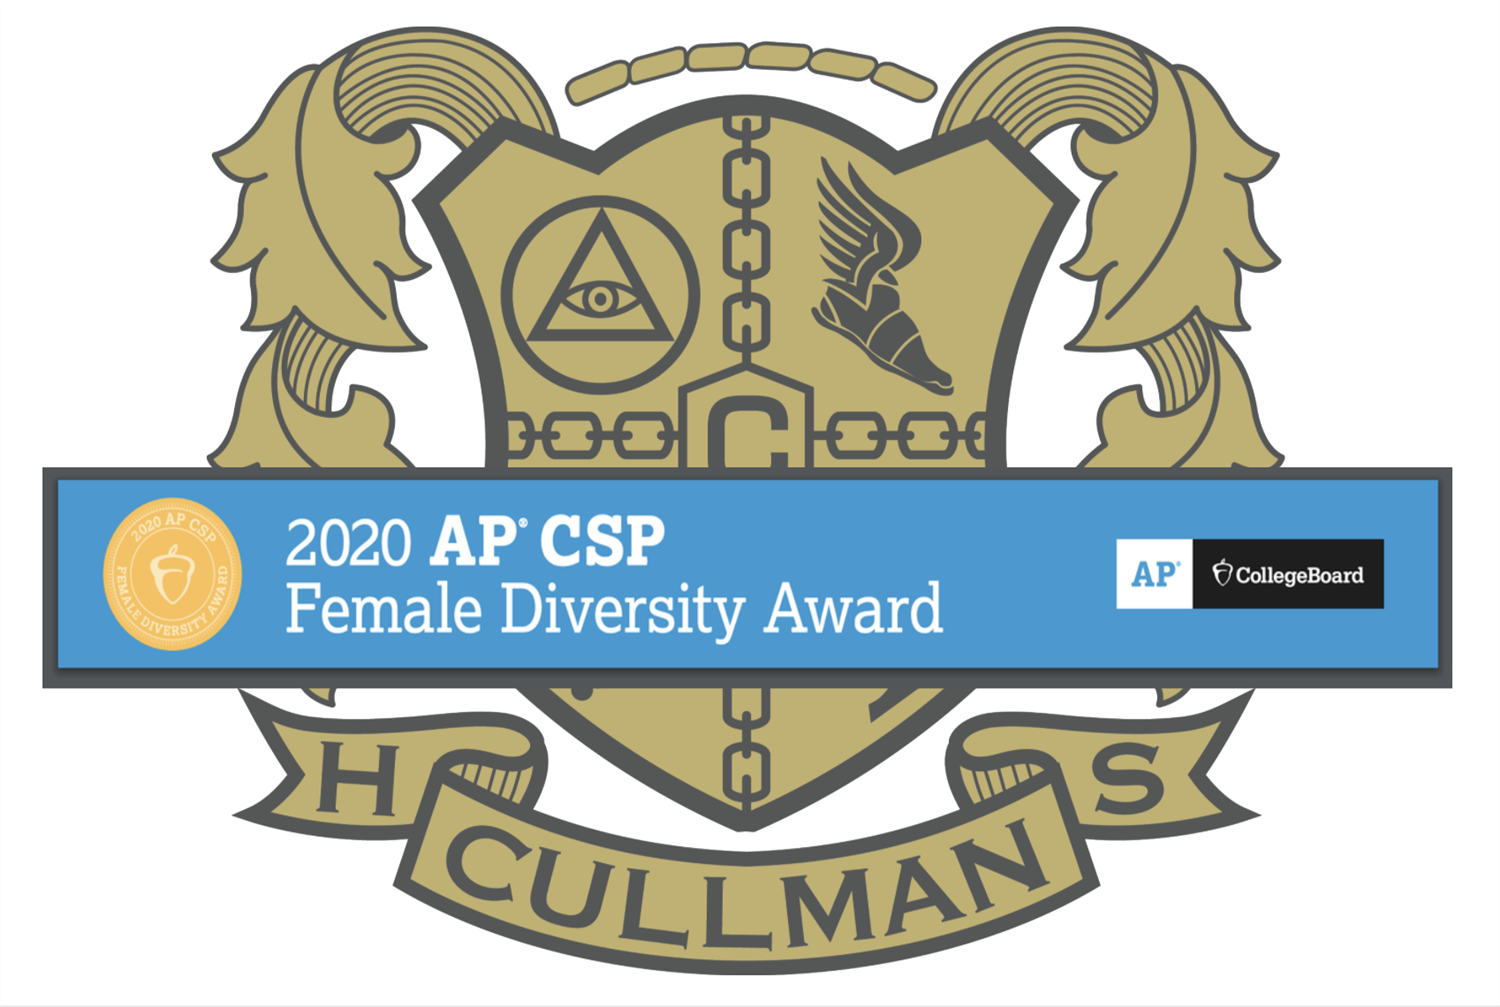 CHS logo with Diversity Award banner across